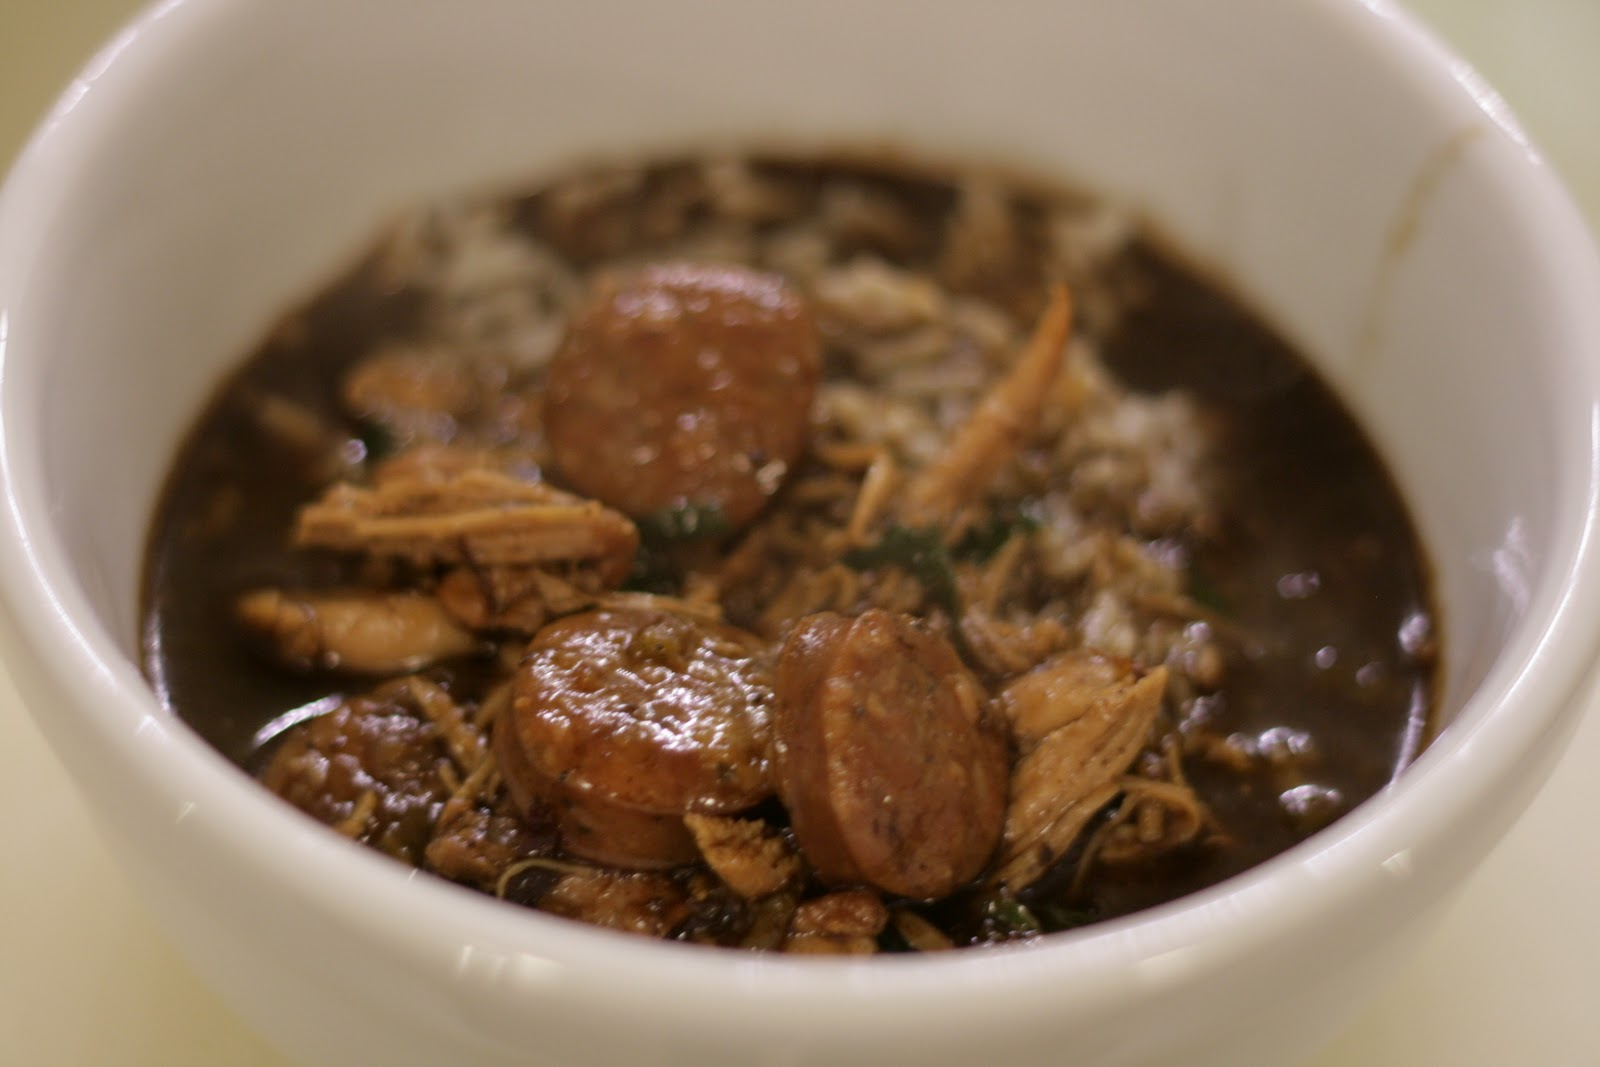 A Bluebonnet in Beantown: Chicken and smoked sausage gumbo